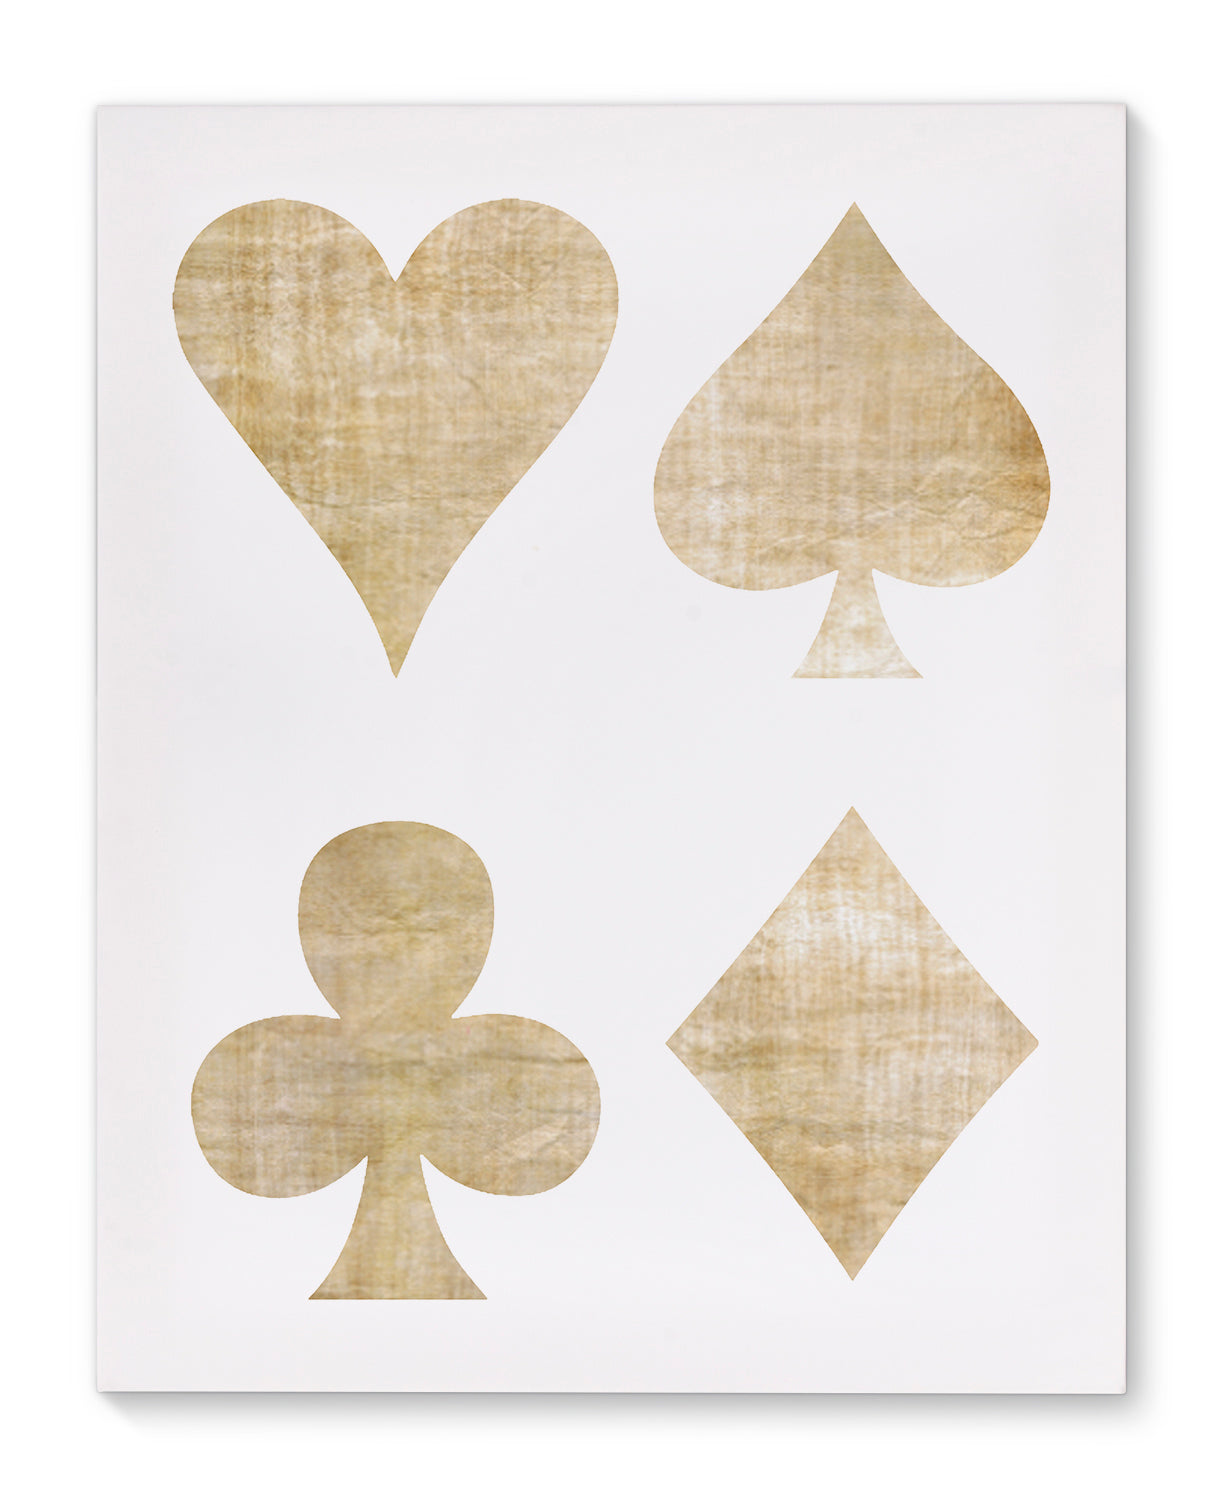 BEIGE PLAYING CARDS Canvas Art By Michelle Parascandolo